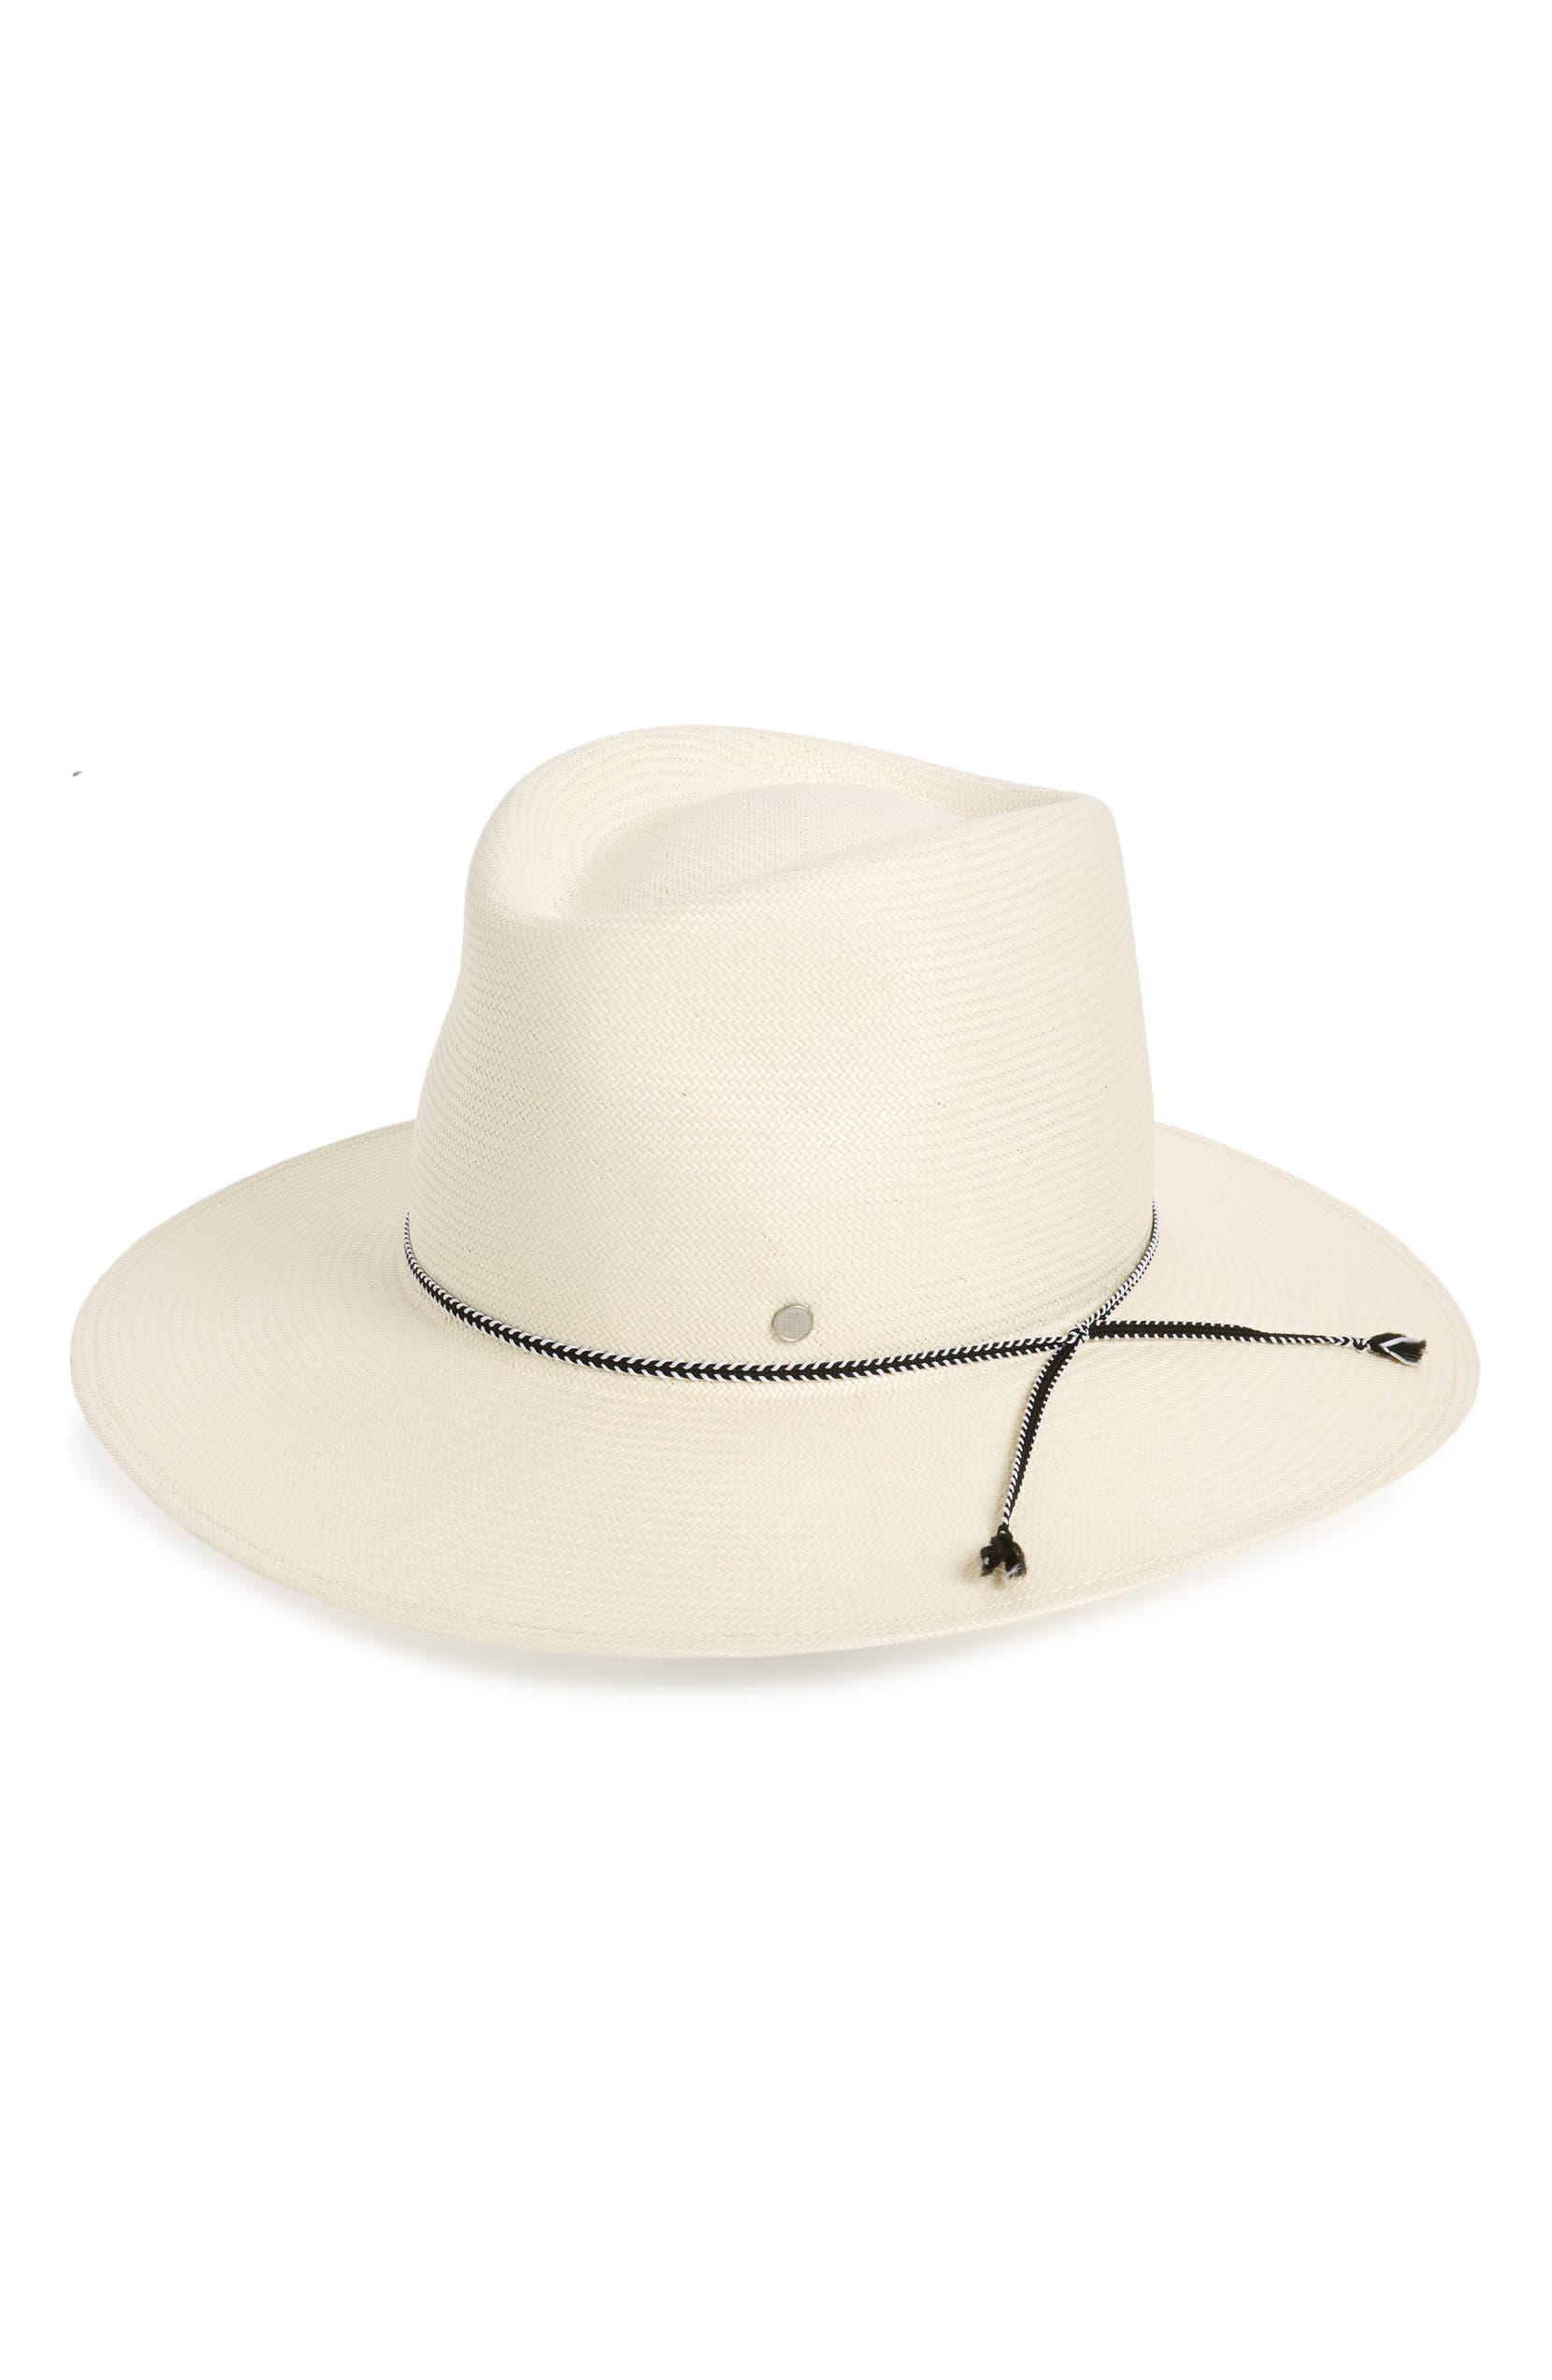 Maison Michel Charles On the Go Straw Hat  47b6184c3c0